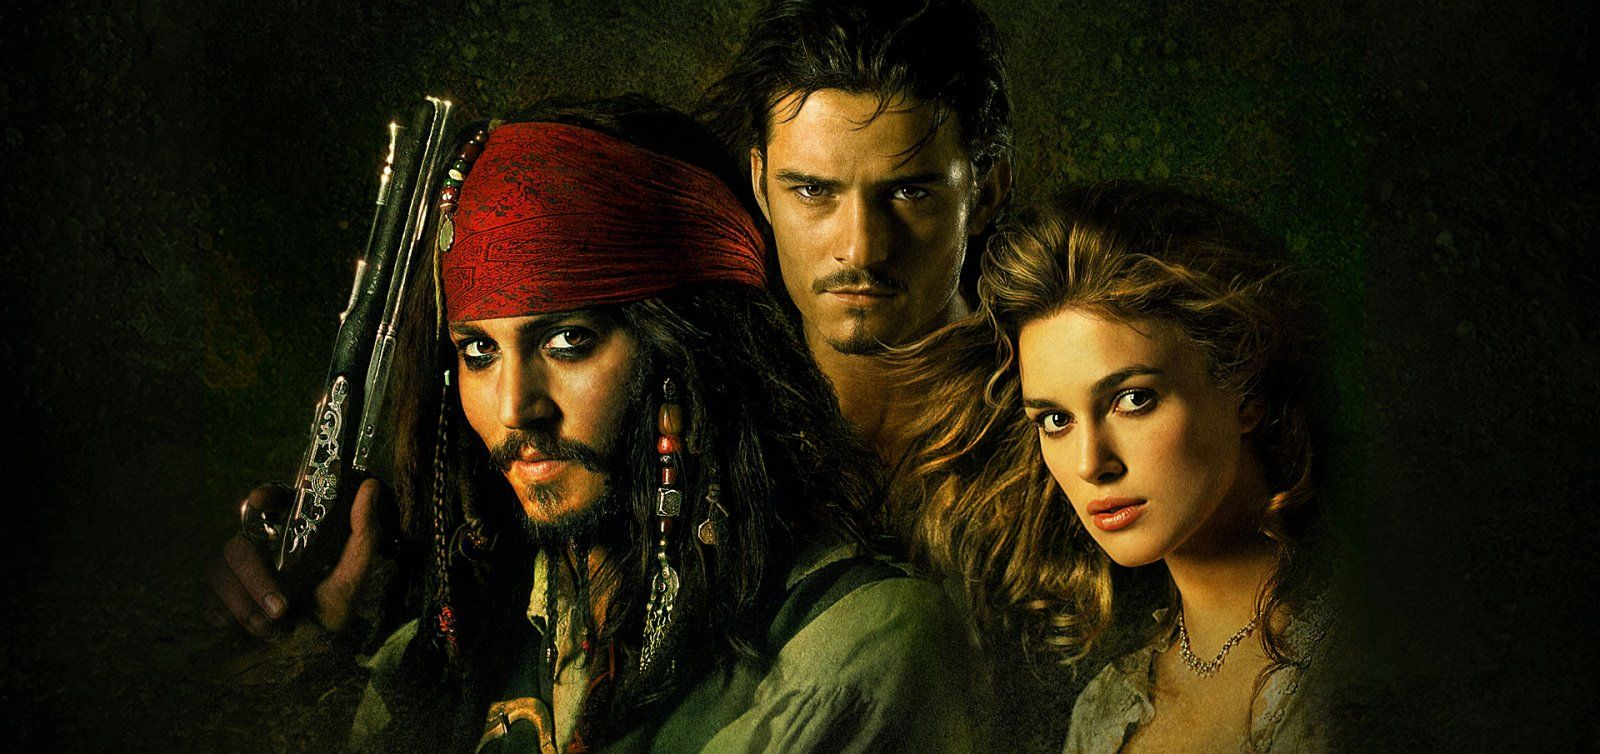 Jerry Bruckheimer hopes 'Pirates of the Carribbean 5' will start filming early 2015